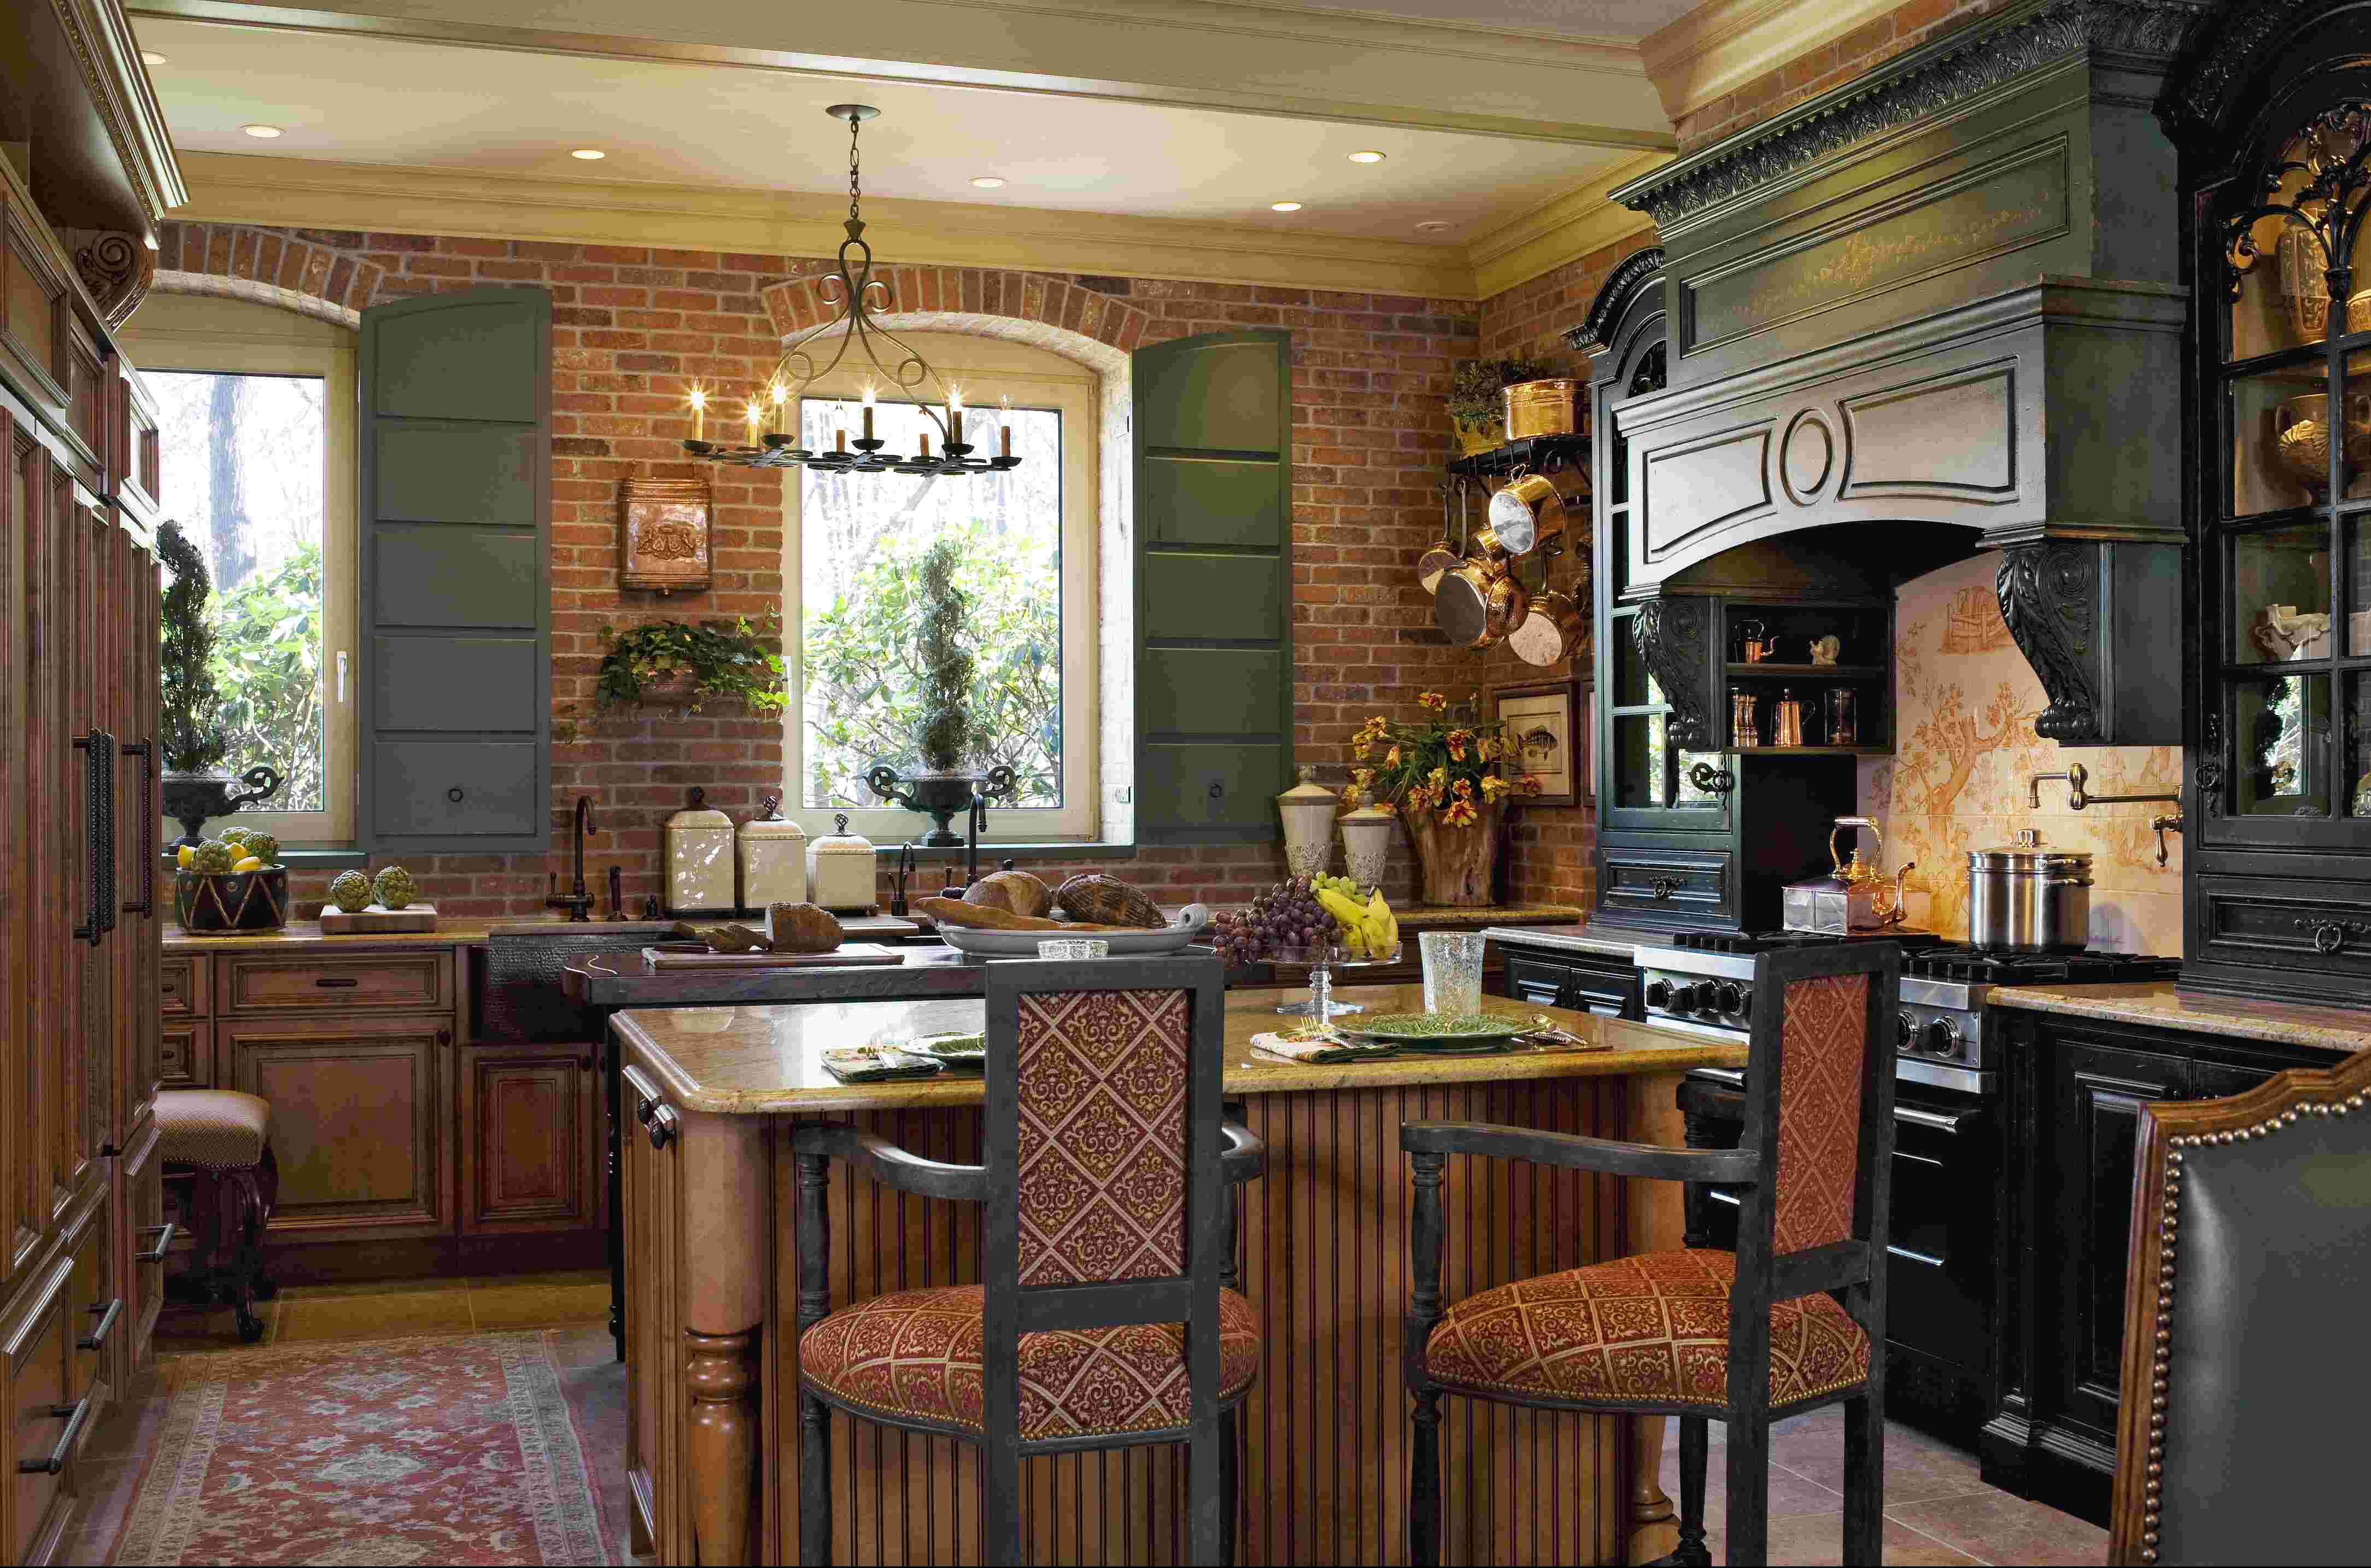 1000 images about french country decor on pinterest on kitchen interior french country id=58583